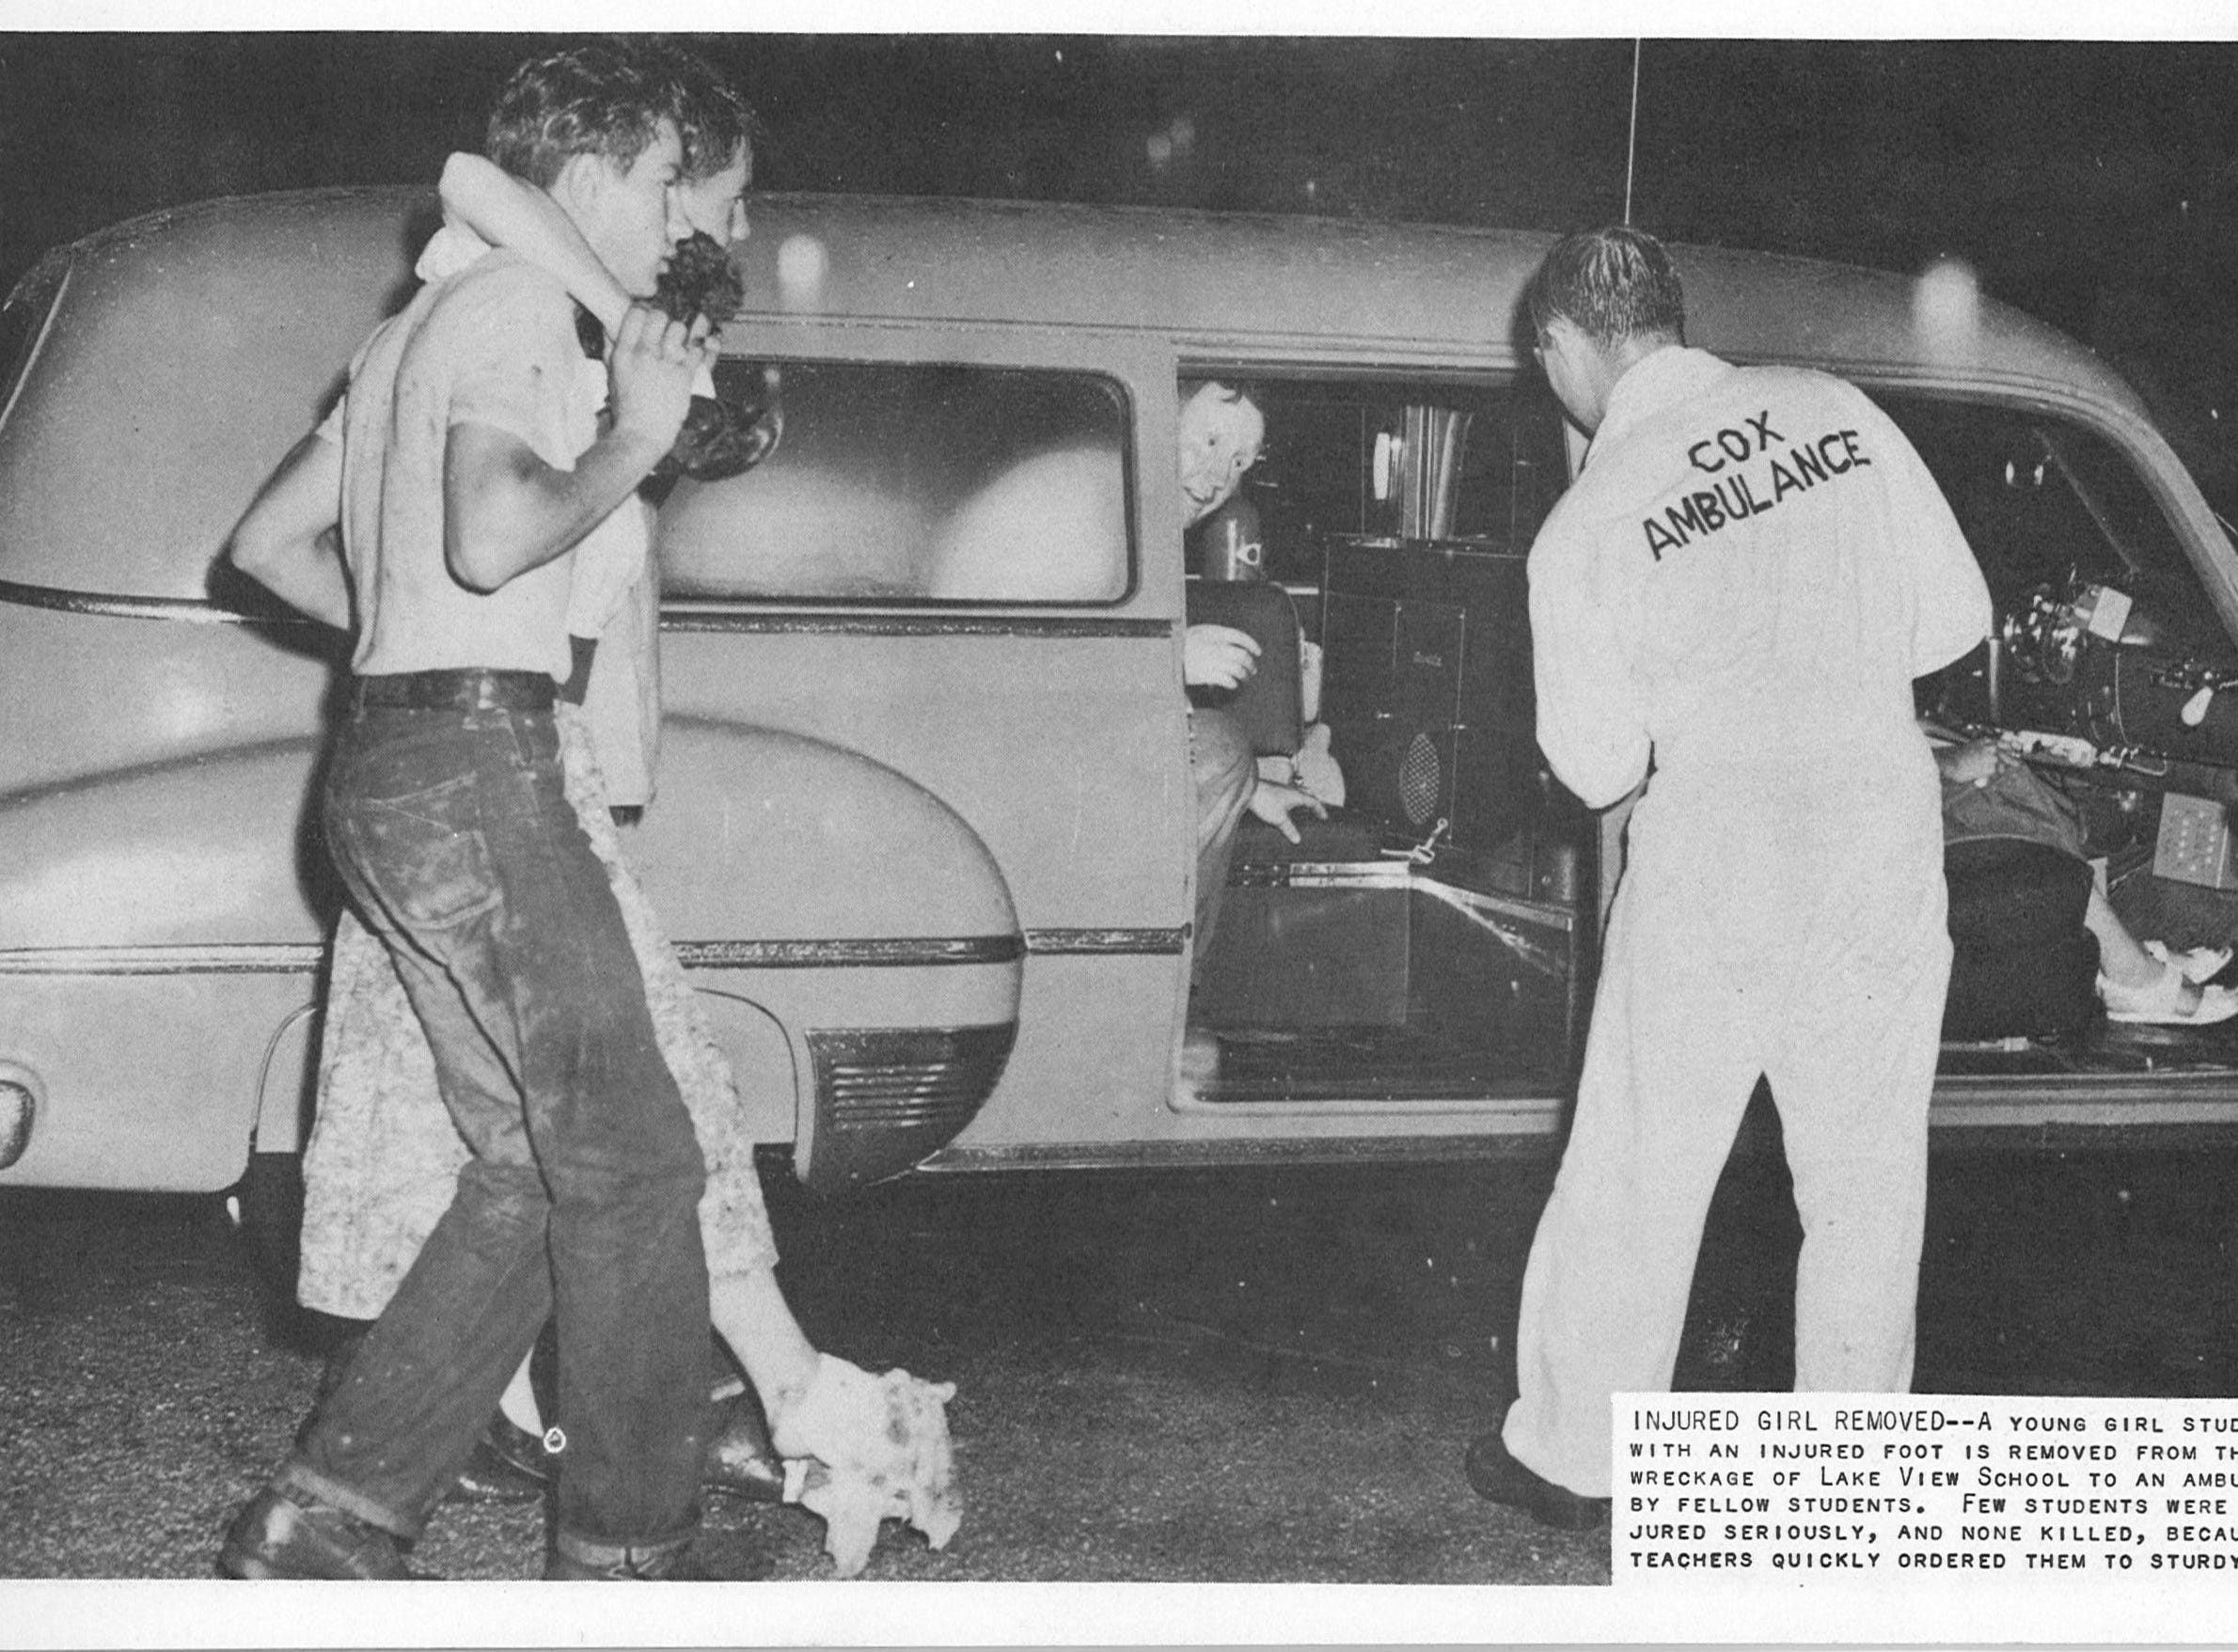 Though the Lake View tornado was devastating, residents stepped in to help their neighbors on May 11, 1953. The outline reads: A young girl student with an injured foot is removed from the wreckage of Lake View School to an ambulance by fellow students. Few students were injured seriously, and none killed, because teachers quickly ordered them to sturdy areas.